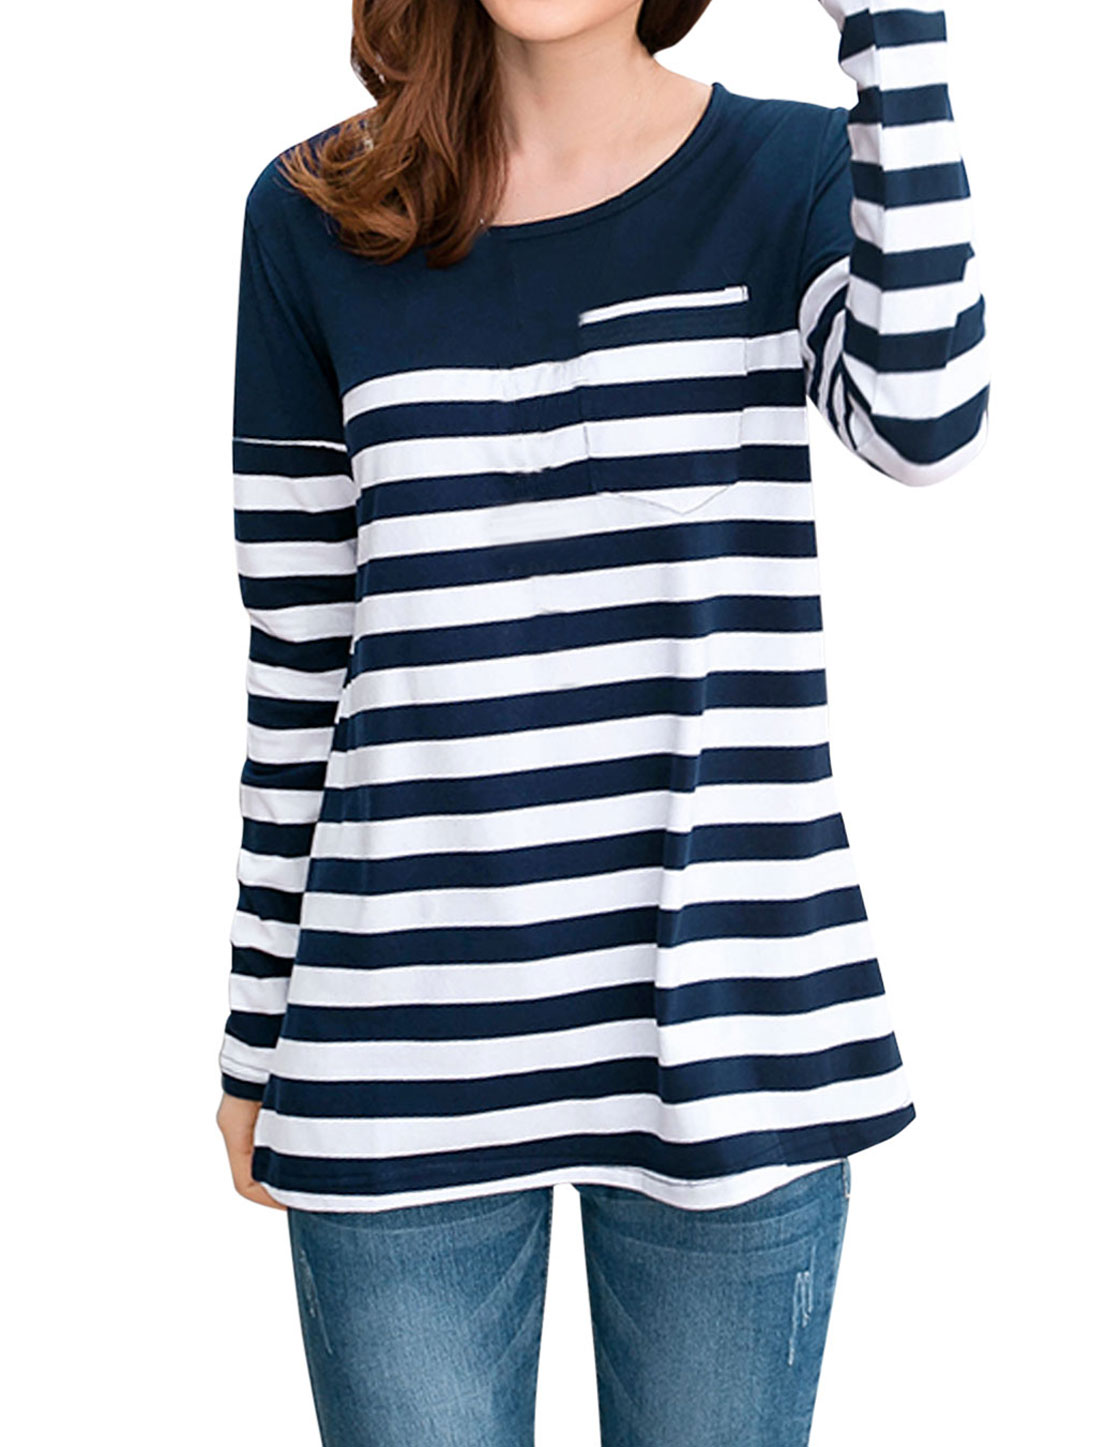 Women Color Block Bar Striped Casual Tee Shirt Navy Blue White S